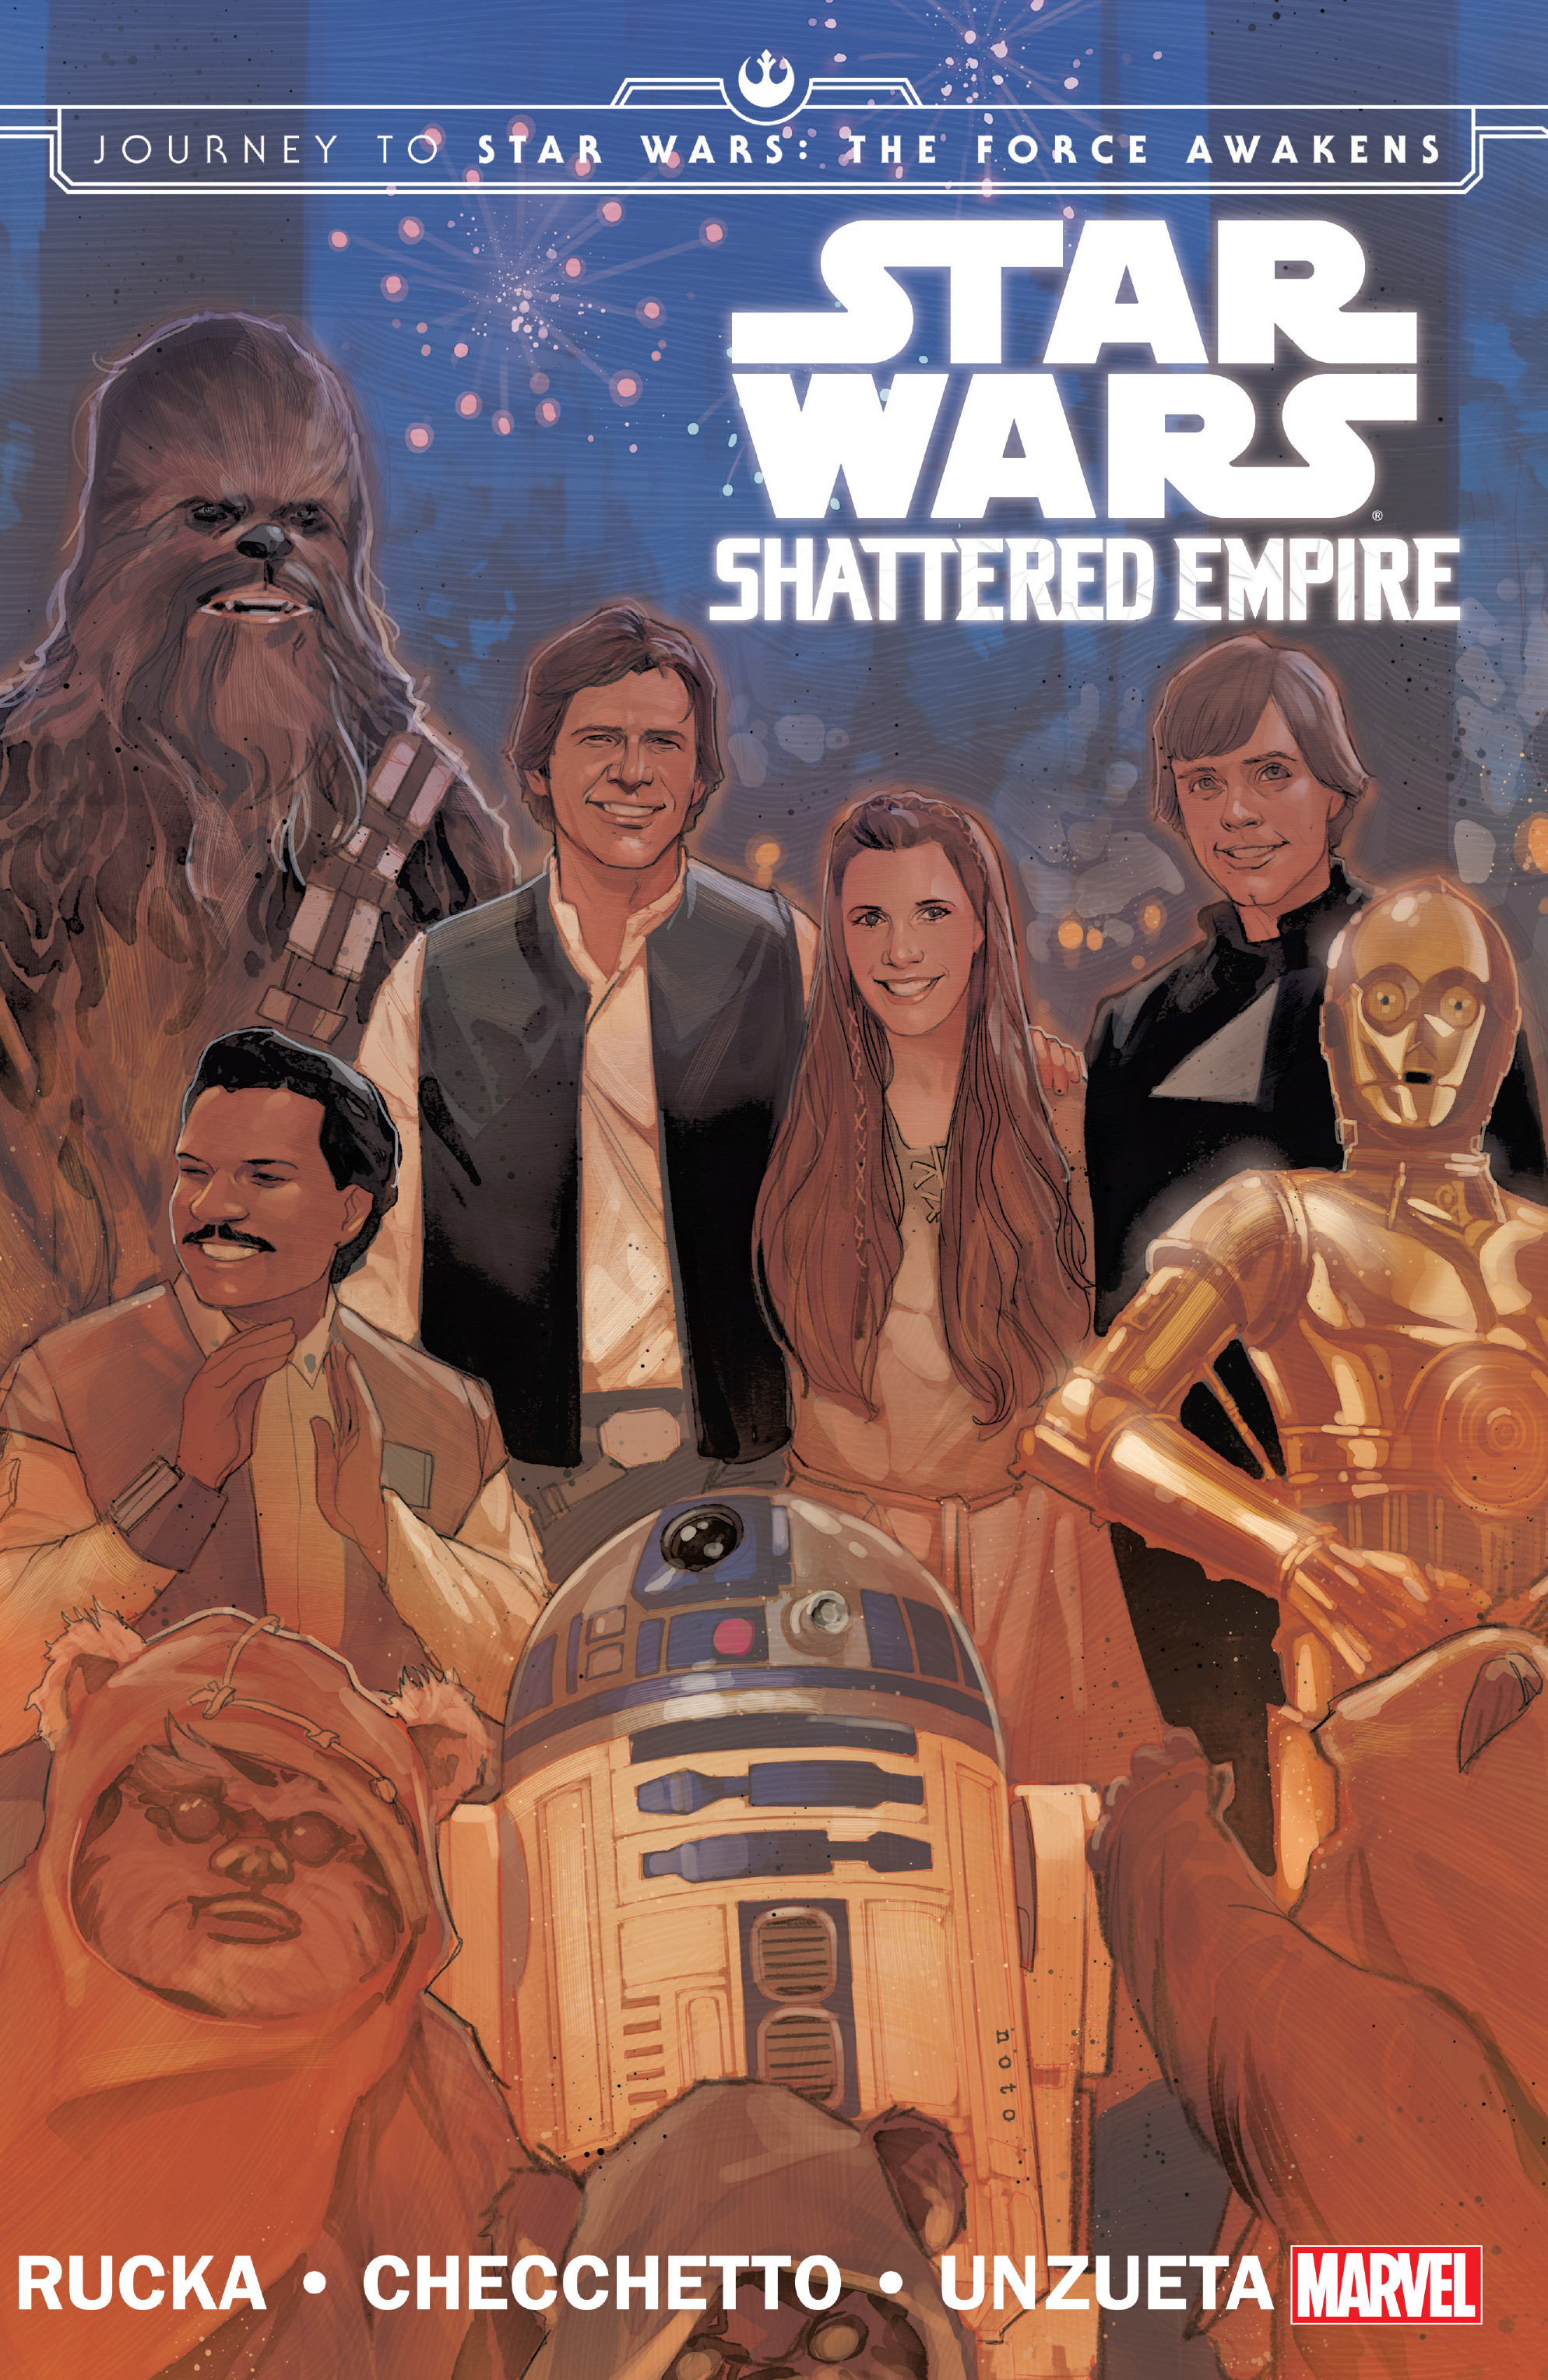 Journey to Star Wars - The Force Awakens - Shattered Empire